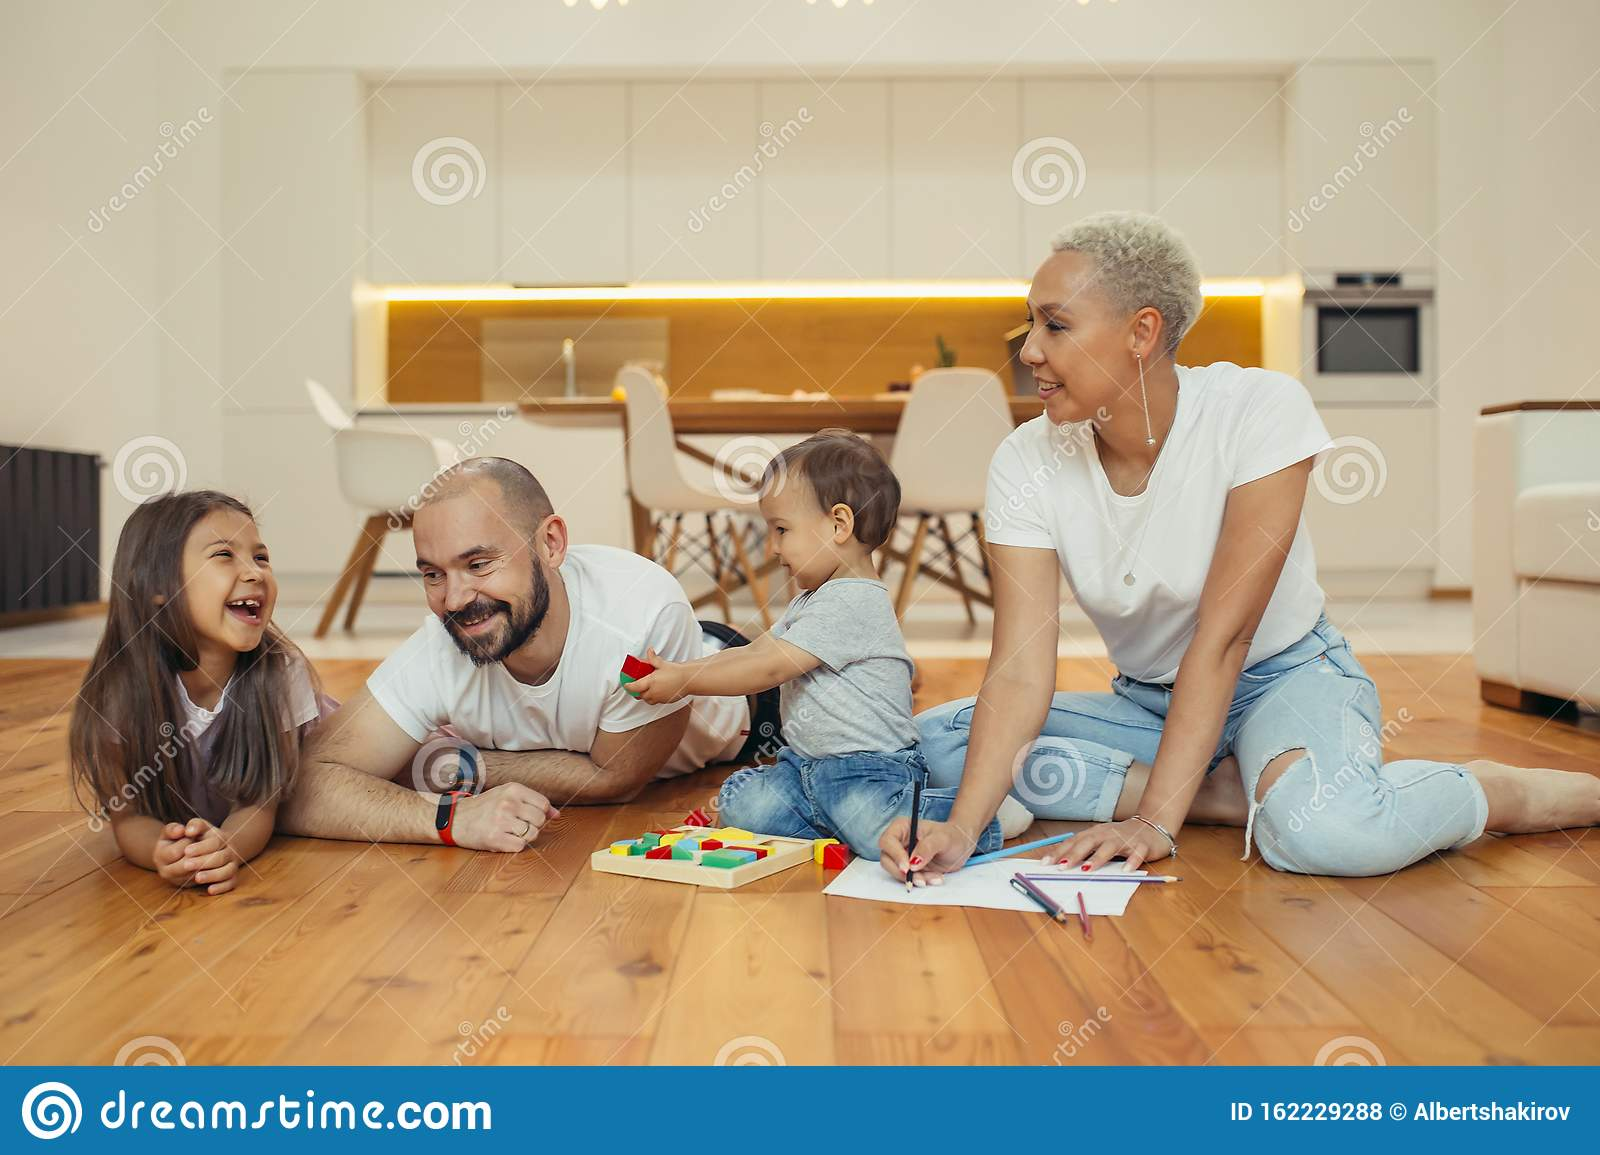 Caucasian Family Parents With Children Playing And Laughing On